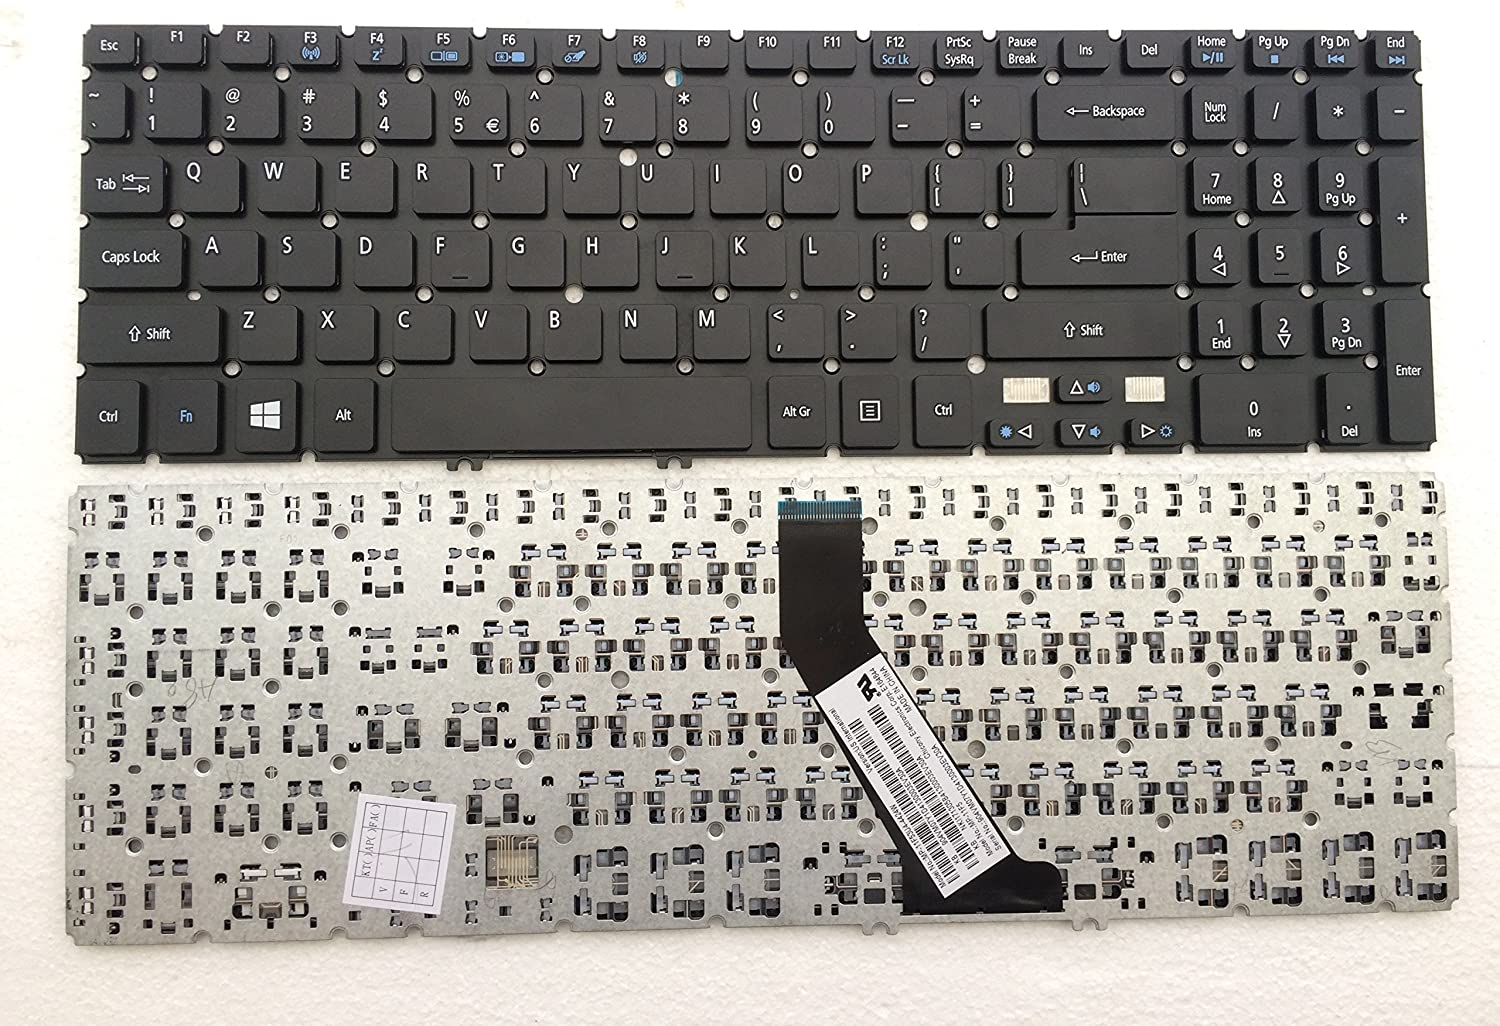 keyboard go go go Replacement Keyboard for Acer Aspire V5-531 V5-551 V5-571 M5-581G MP-11F5 US MP-11F53U4-4424W PK130O22A00 MP-11F53U4-528 V5-571